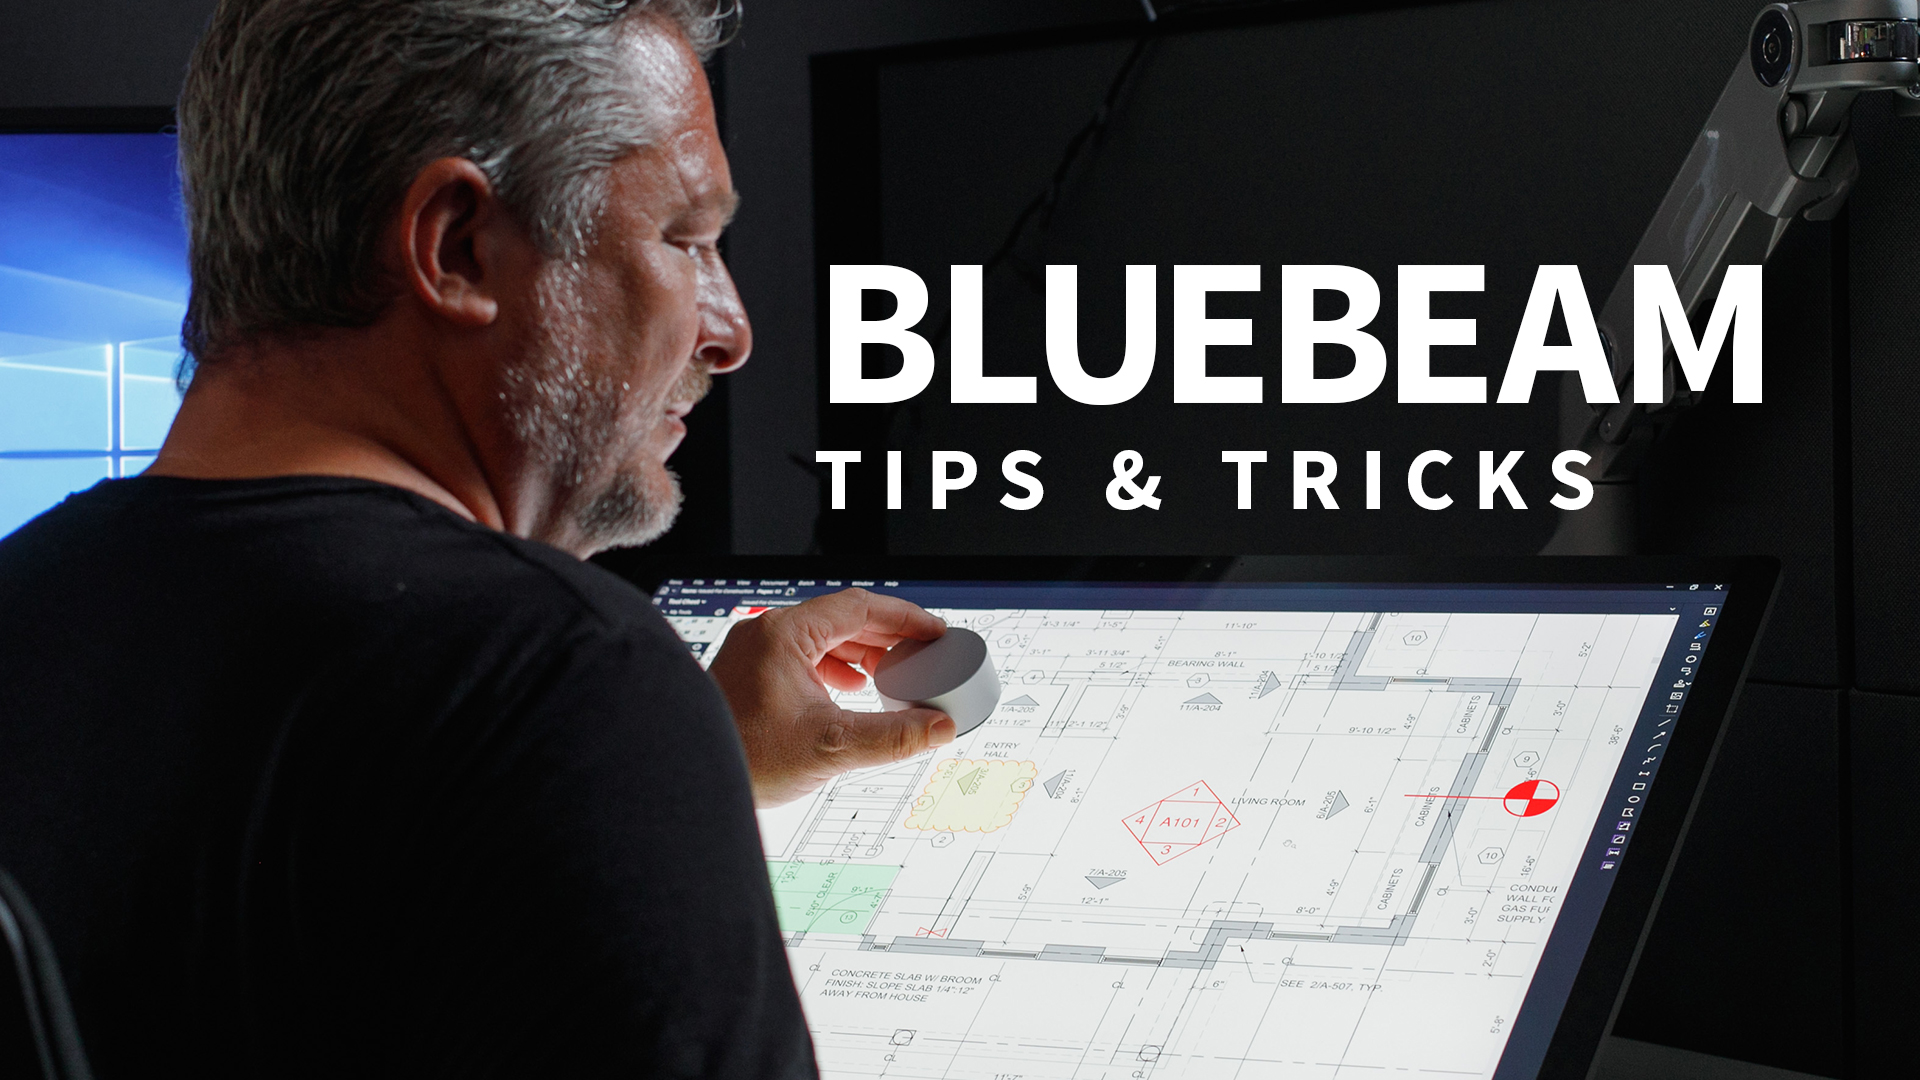 Becoming a Bluebeam pro - Bluebeam: Tips and Tricks